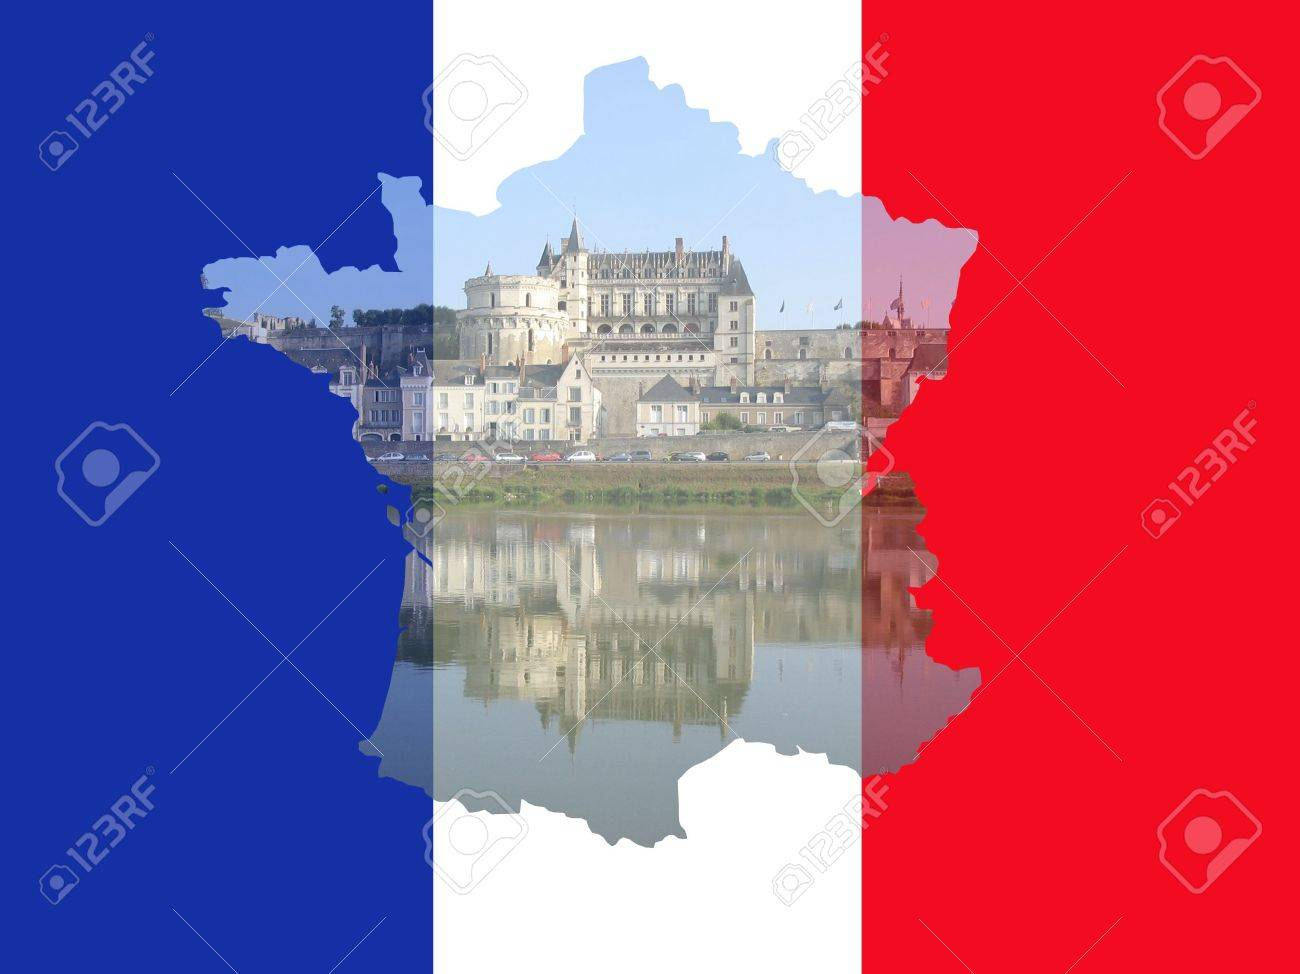 Amboise France Map.Amboise Chateau Reflected In River Loire France With French Map